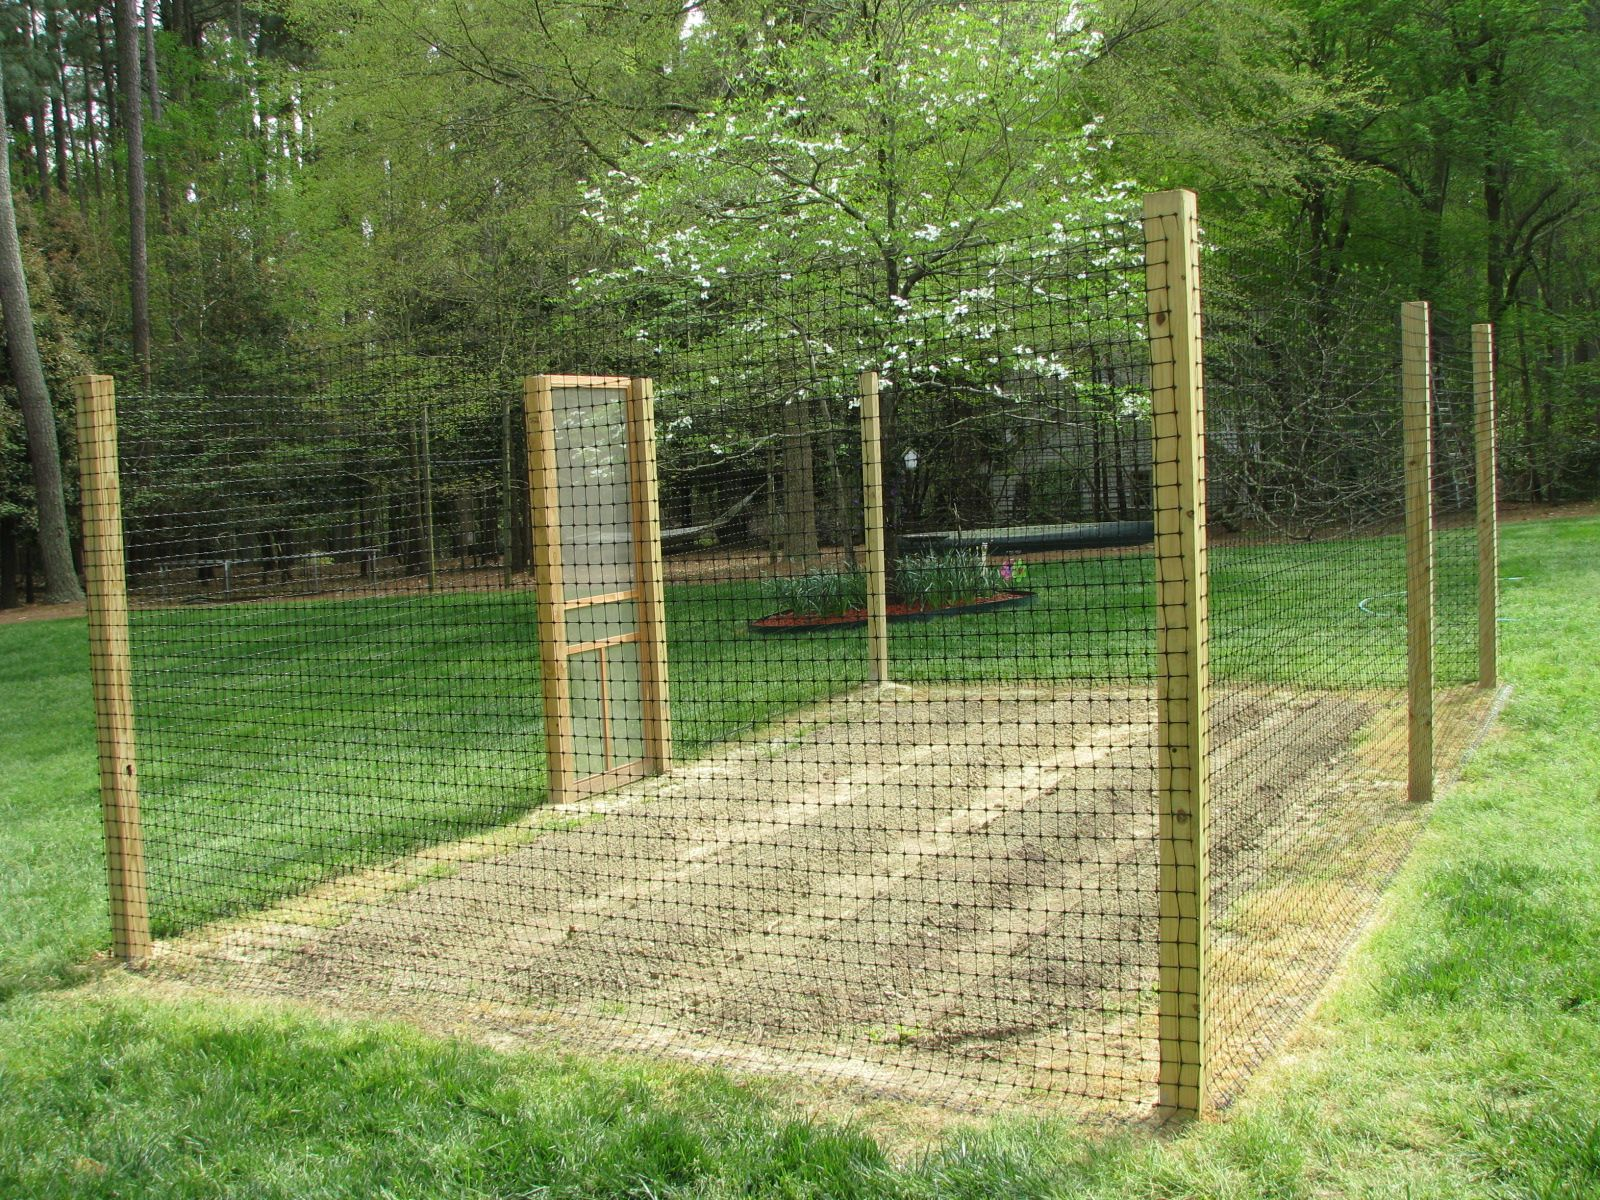 Vegetable garden deer fence ideas - Deer Proof Garden Fence Some Nice Photos From Chris In Raleigh Nc Thanks Chris